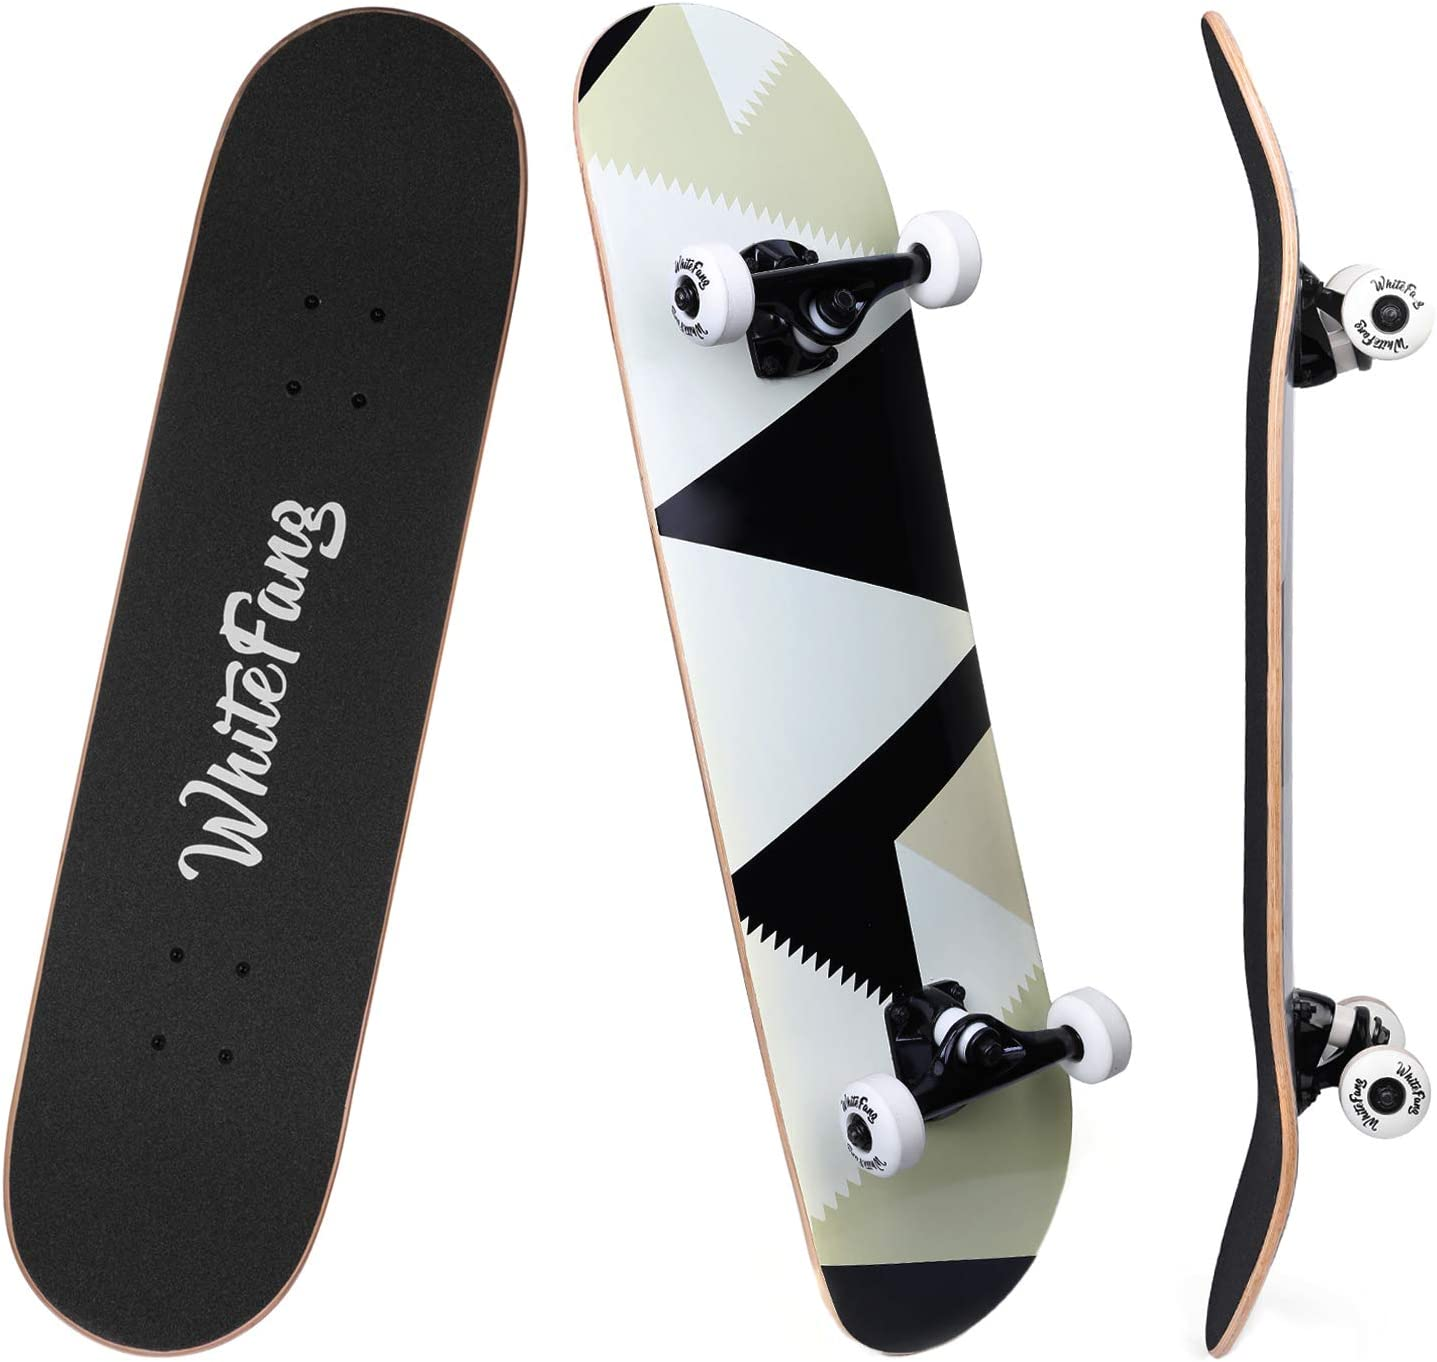 WhiteFang 7 Layer Canadian Maple Double Kick Skateboard for Beginners